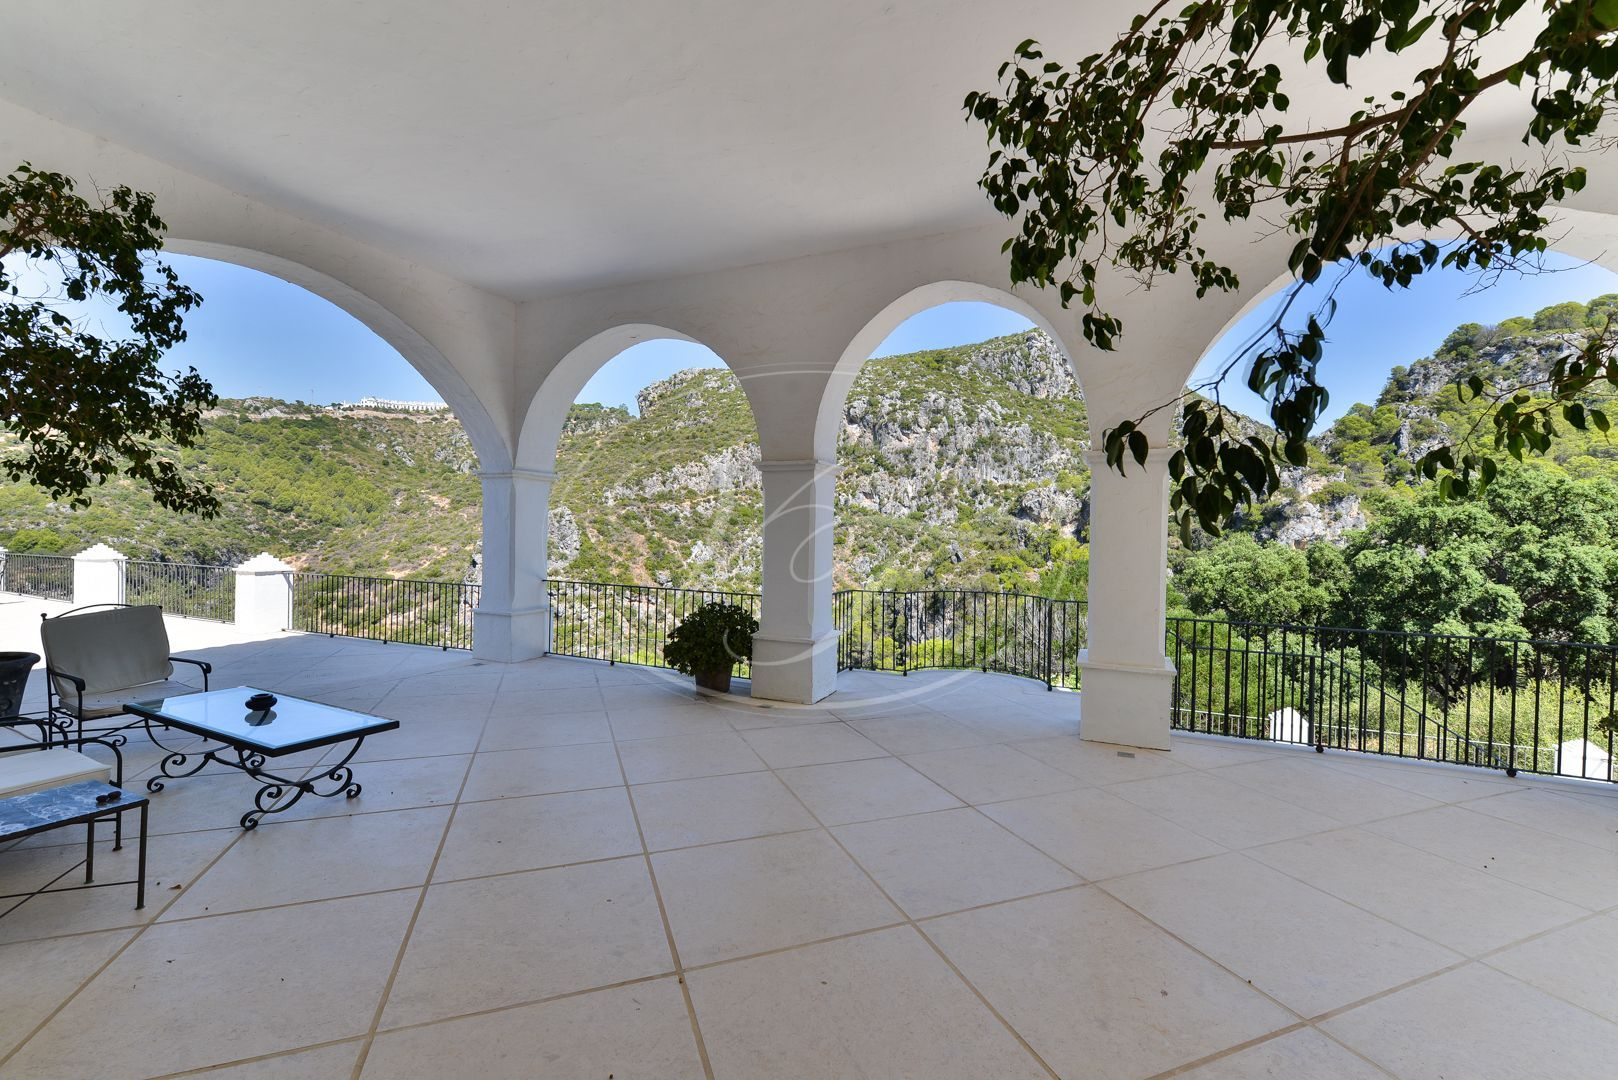 Estate for sale in Casares